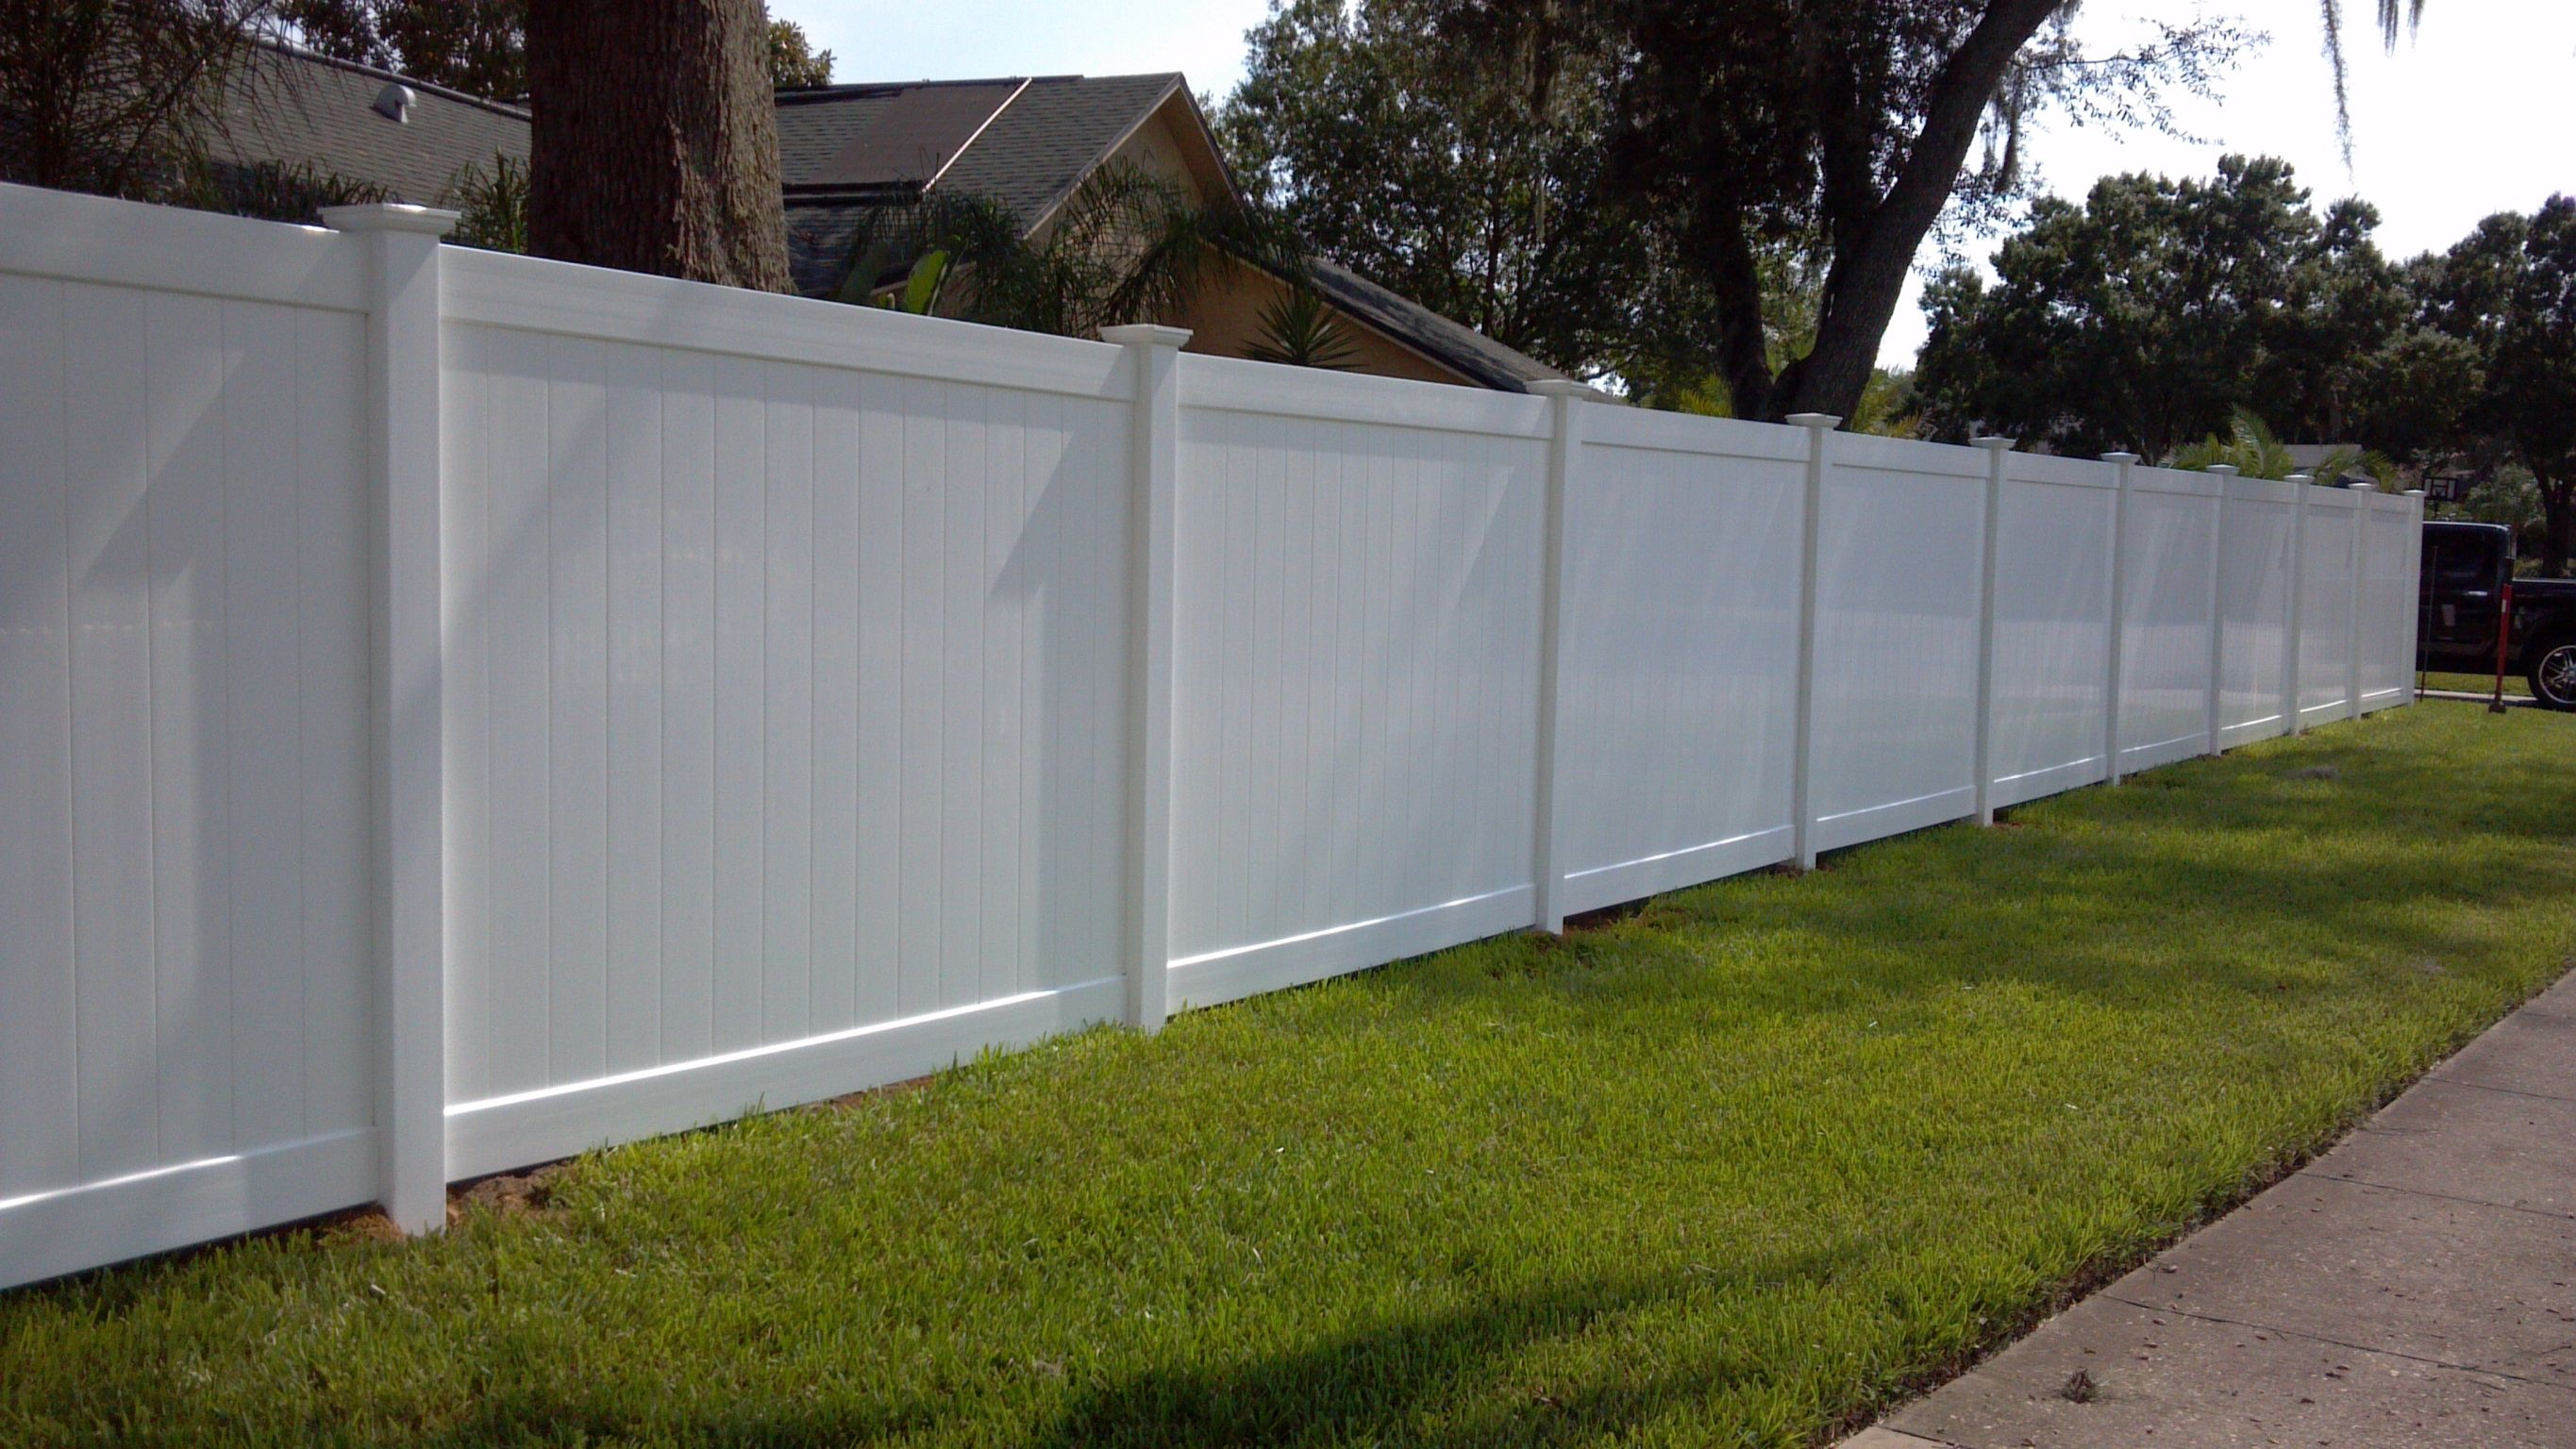 Outdoor Yard Vinyl Fences Prices Cheap Pvc Wpc Fence Fence for Backyard Fencing Prices